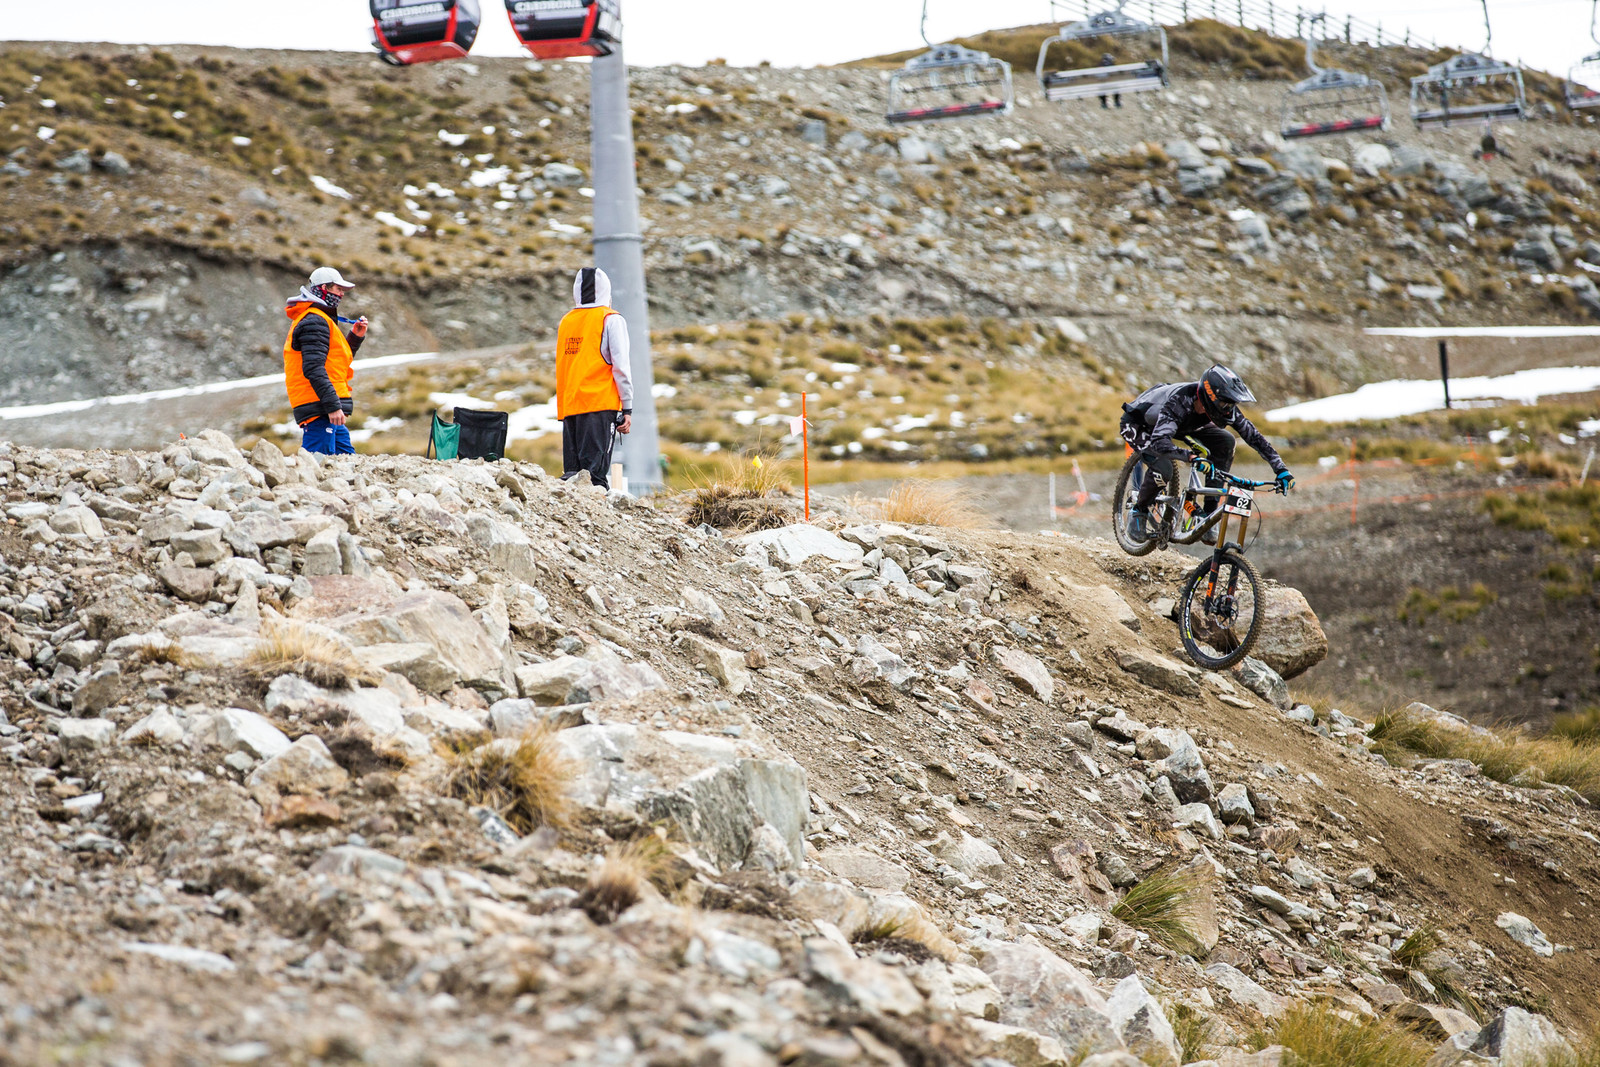 Jonty Vink - Blenki, Brook & More - 2018 NZ National Champs Day 1 - Mountain Biking Pictures - Vital MTB